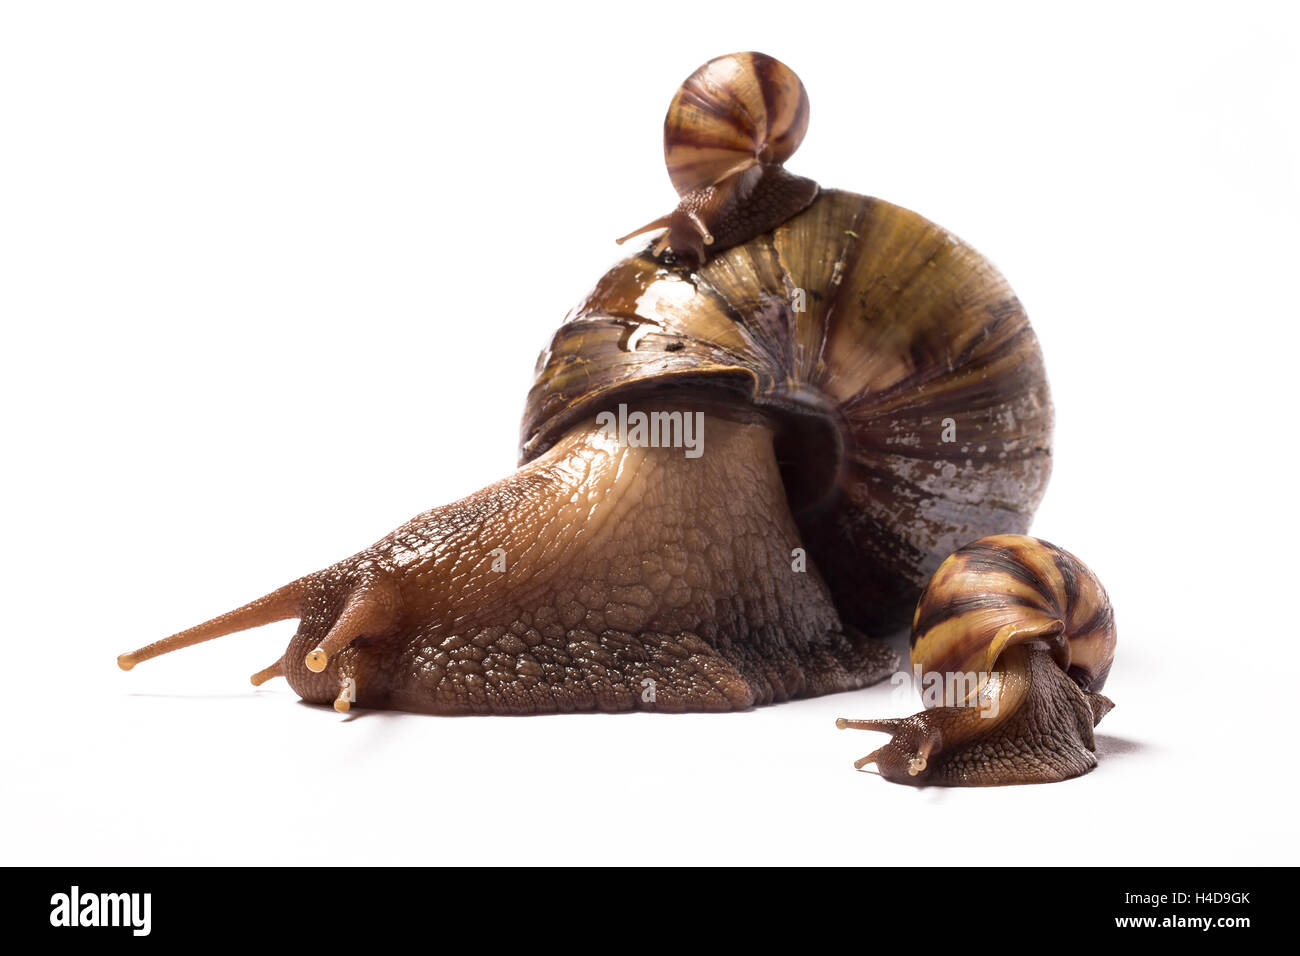 African giant snail with one baby on her shell and another baby by her side - Stock Image